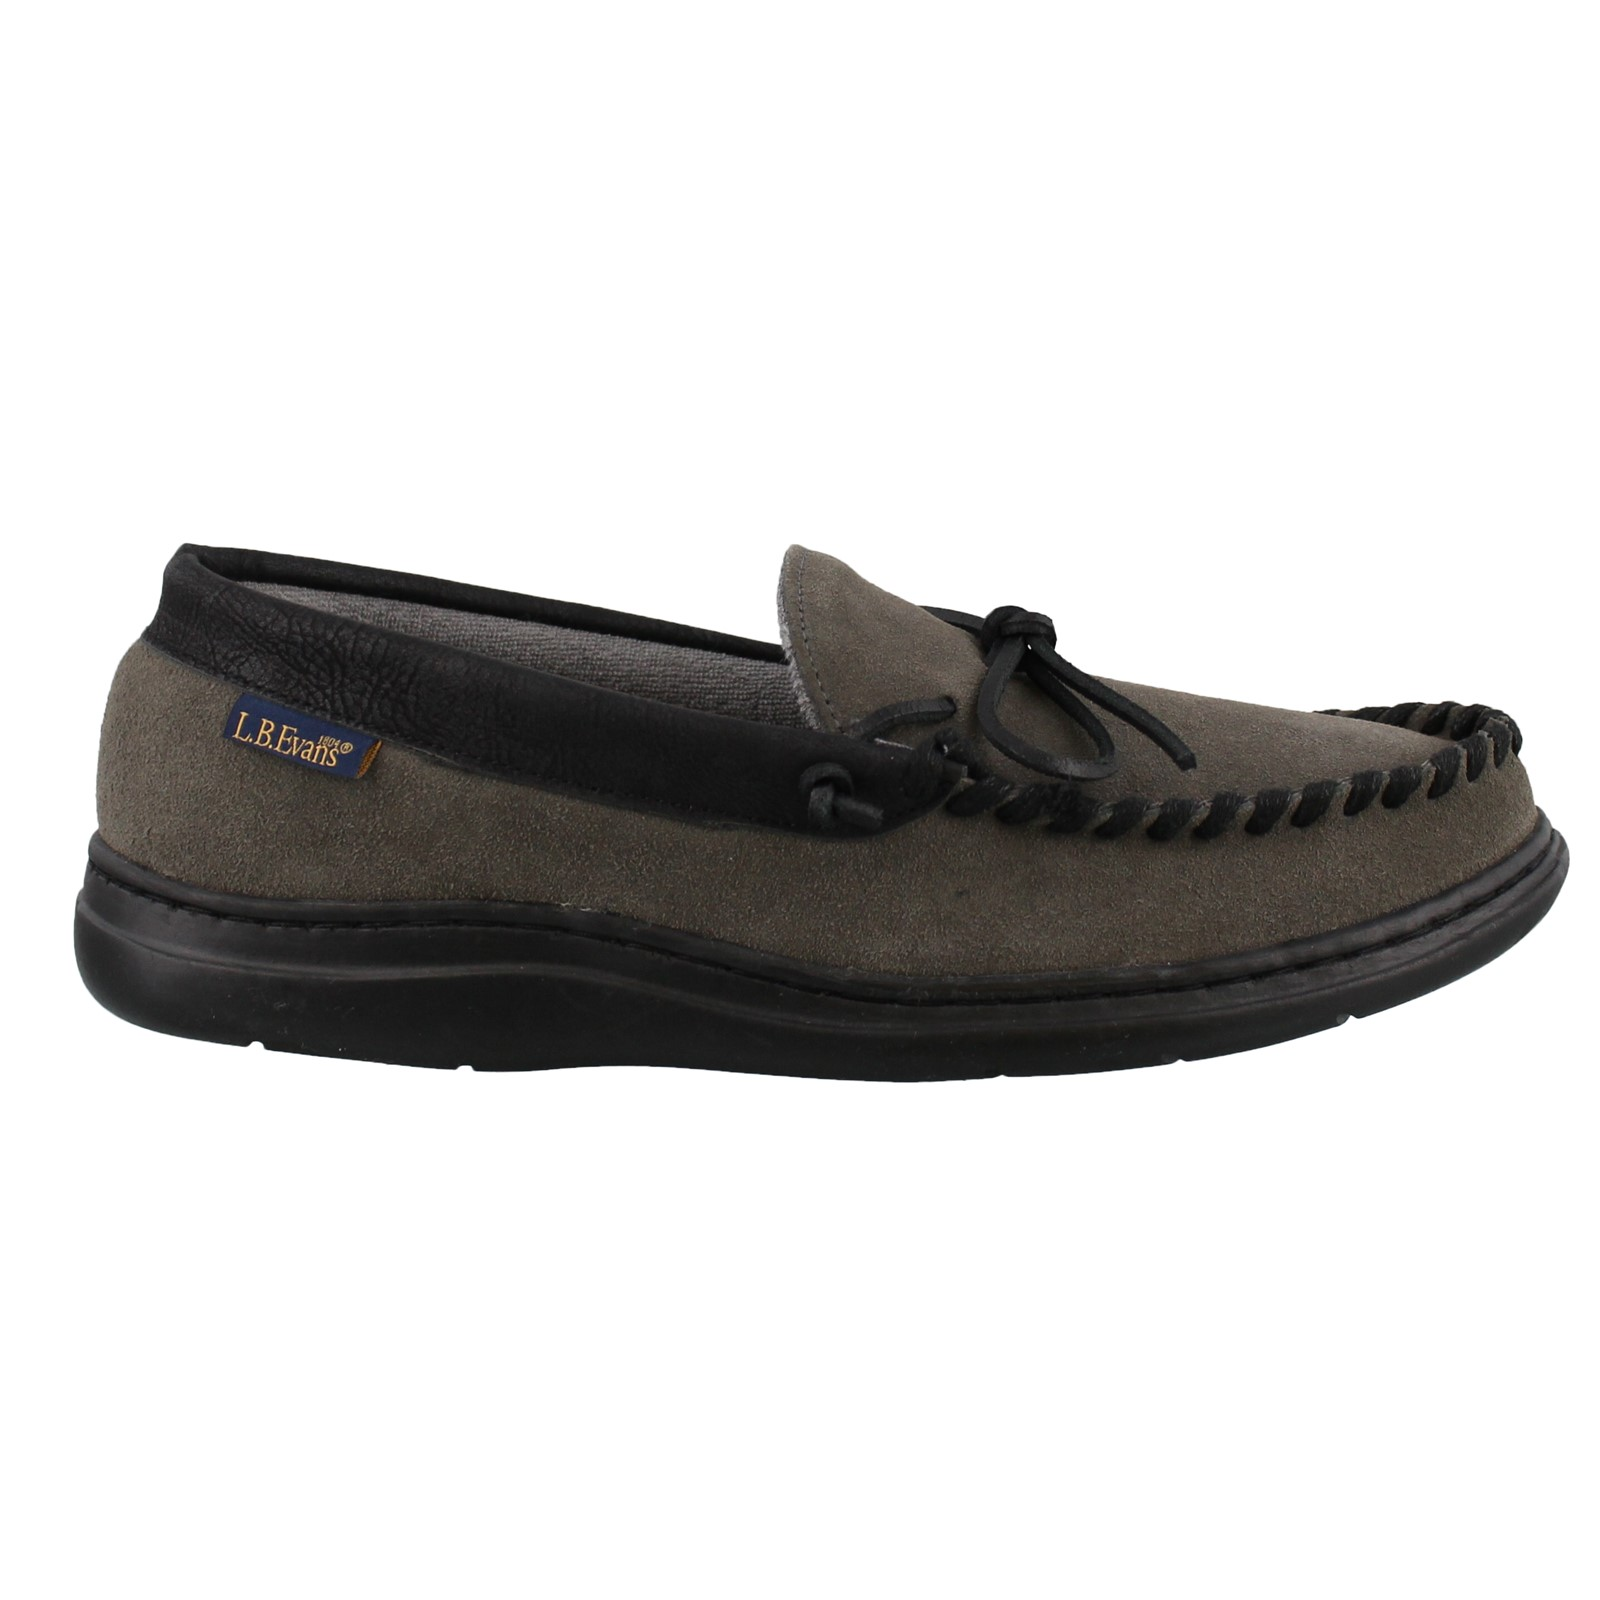 Men's LB Evans, Atlin Slipper